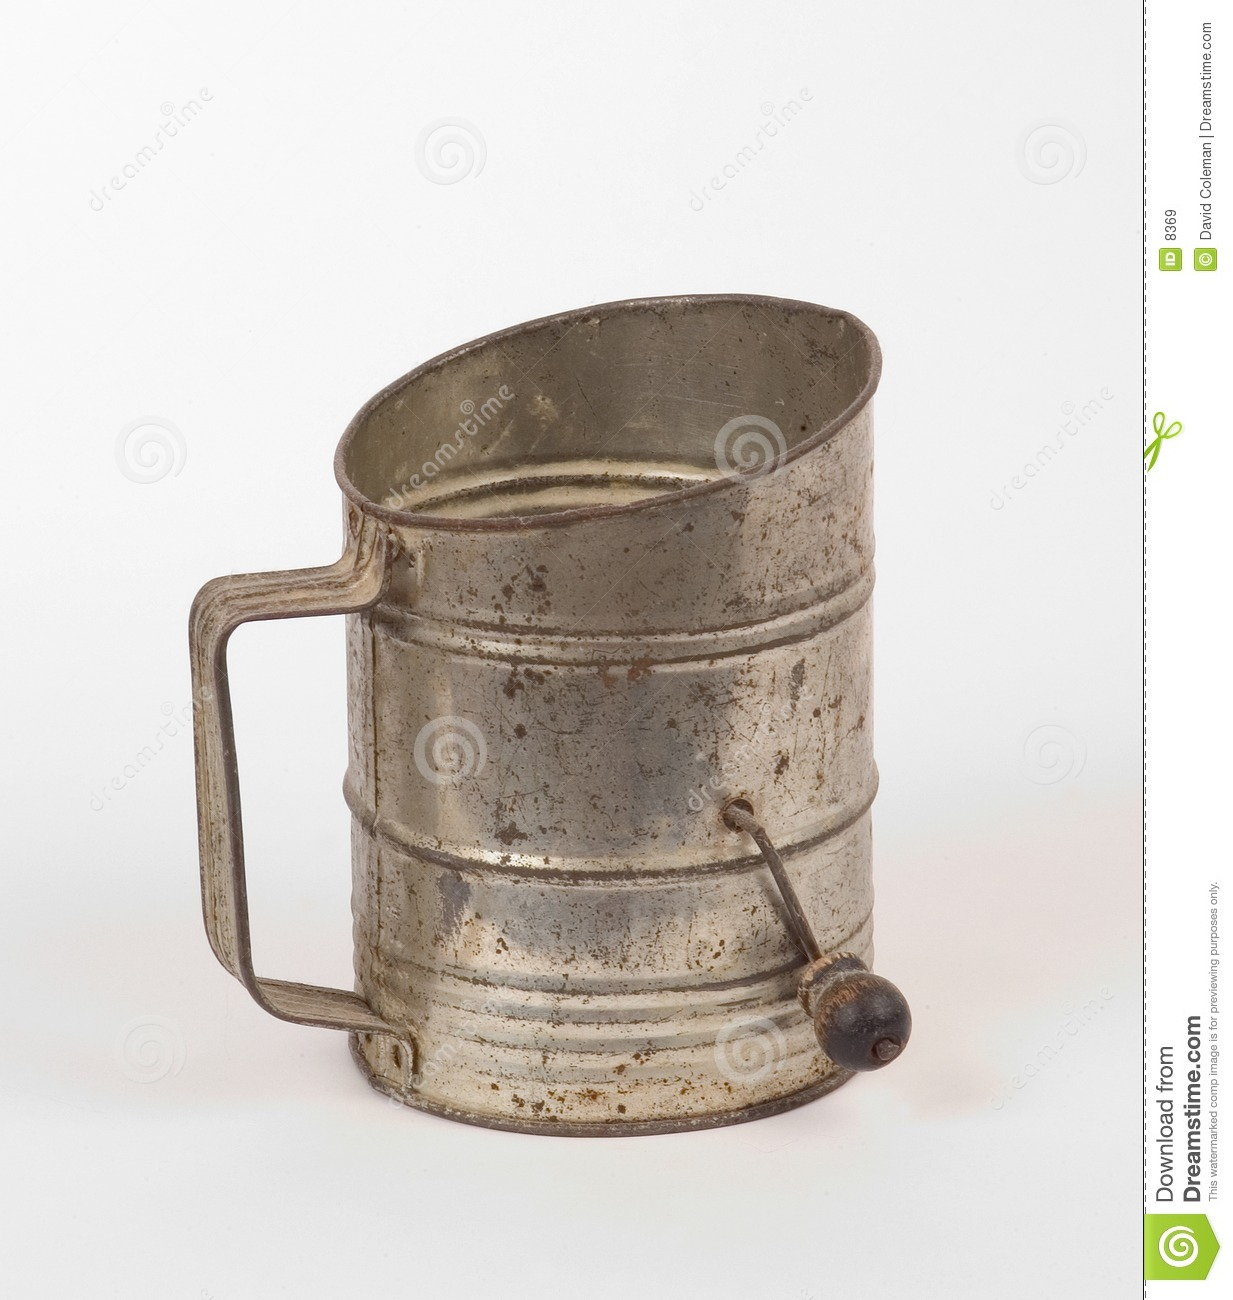 Antique flour sifter